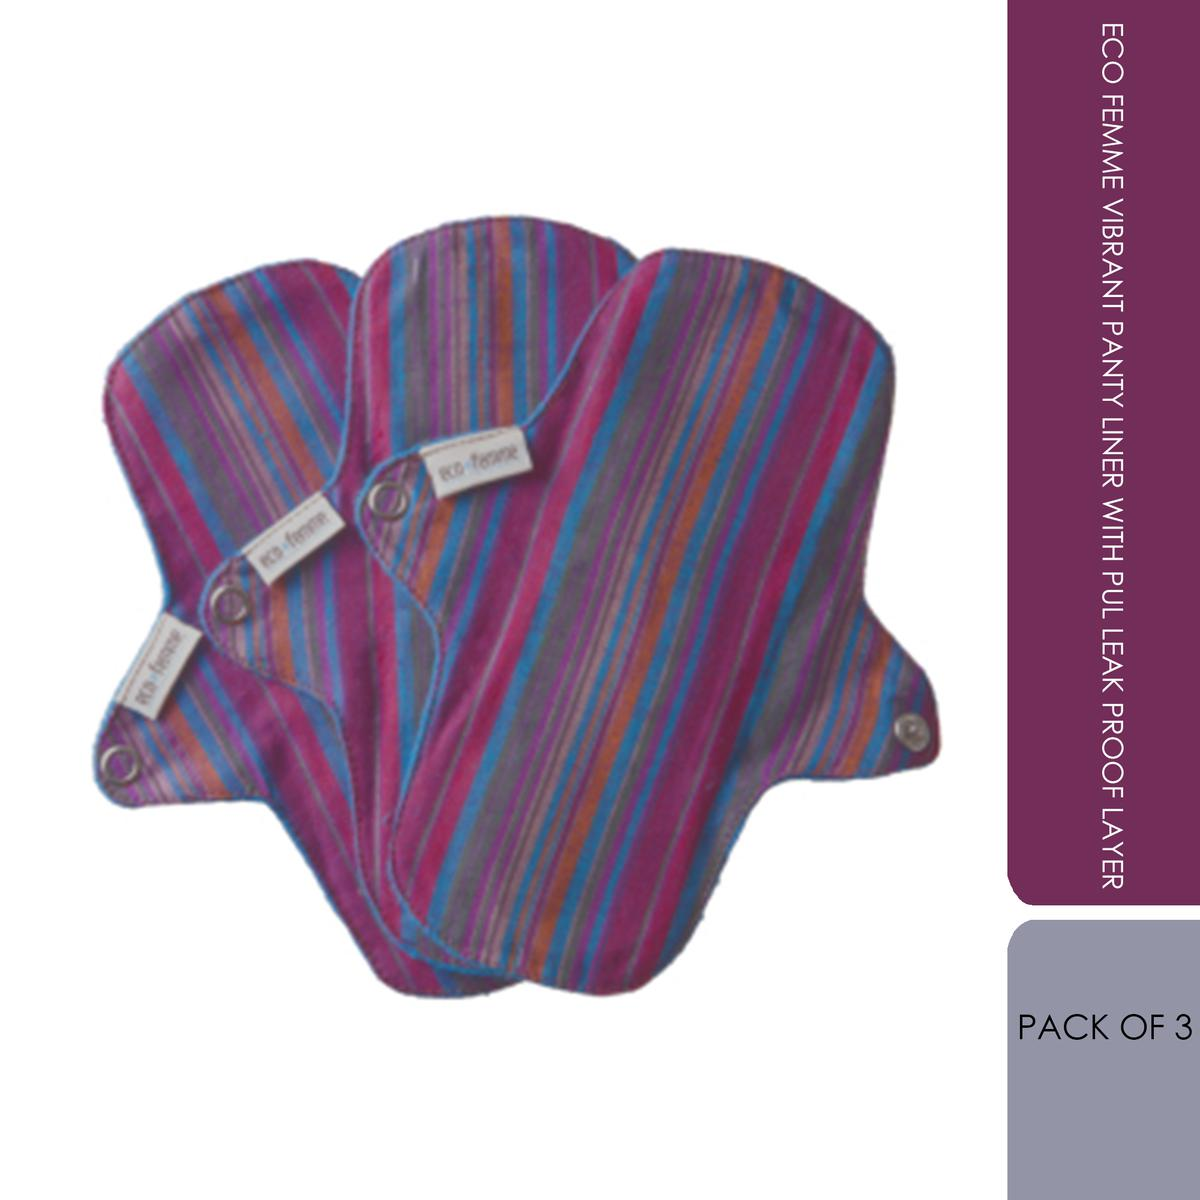 Eco Femme Vibrant Panty Liner With Pul Leak Proof Layer - Pack Of 3